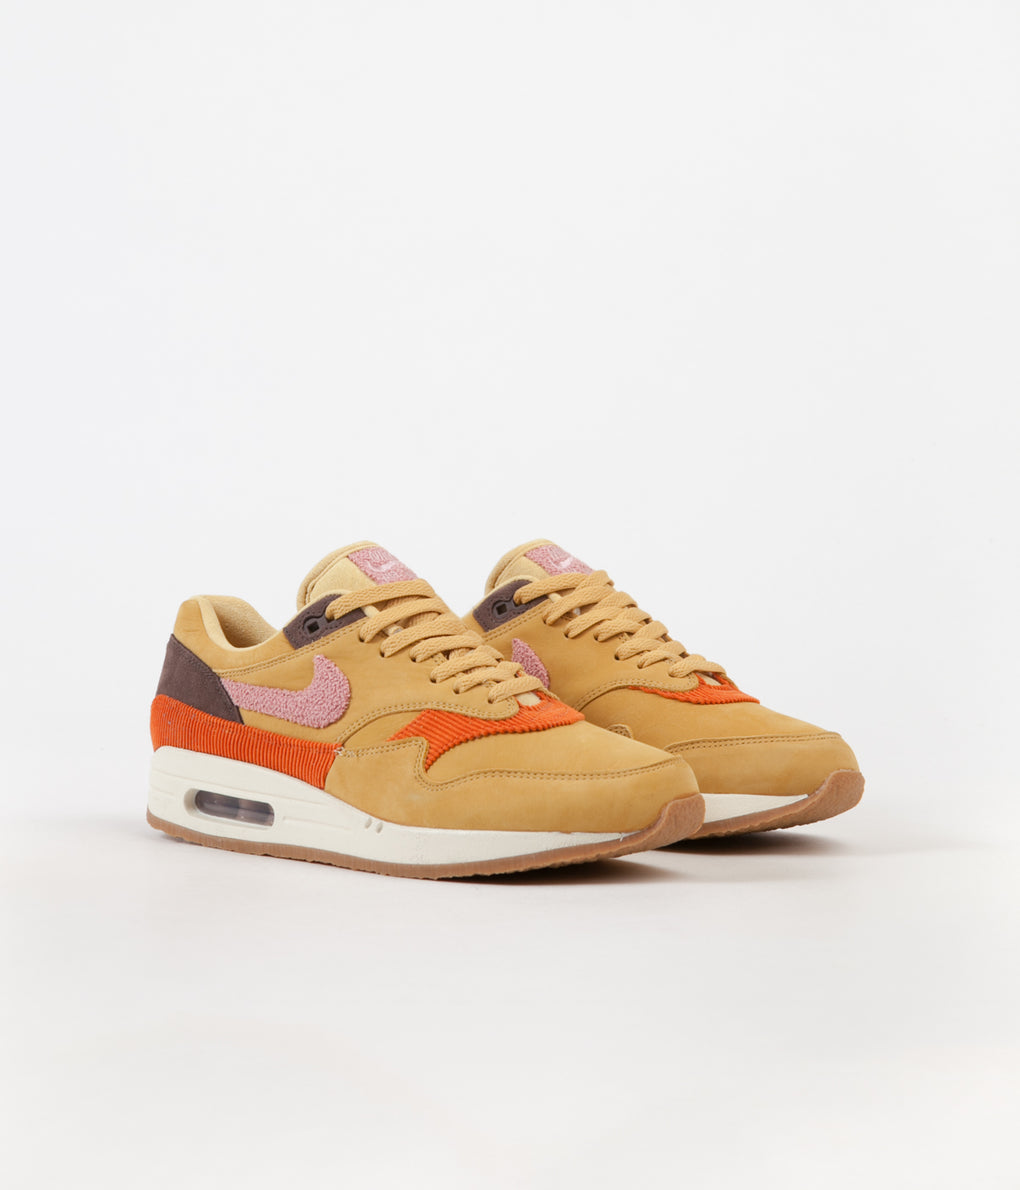 Nike Air Max 1 Shoes - Wheat Gold / Rust Pink - Baroque Brown